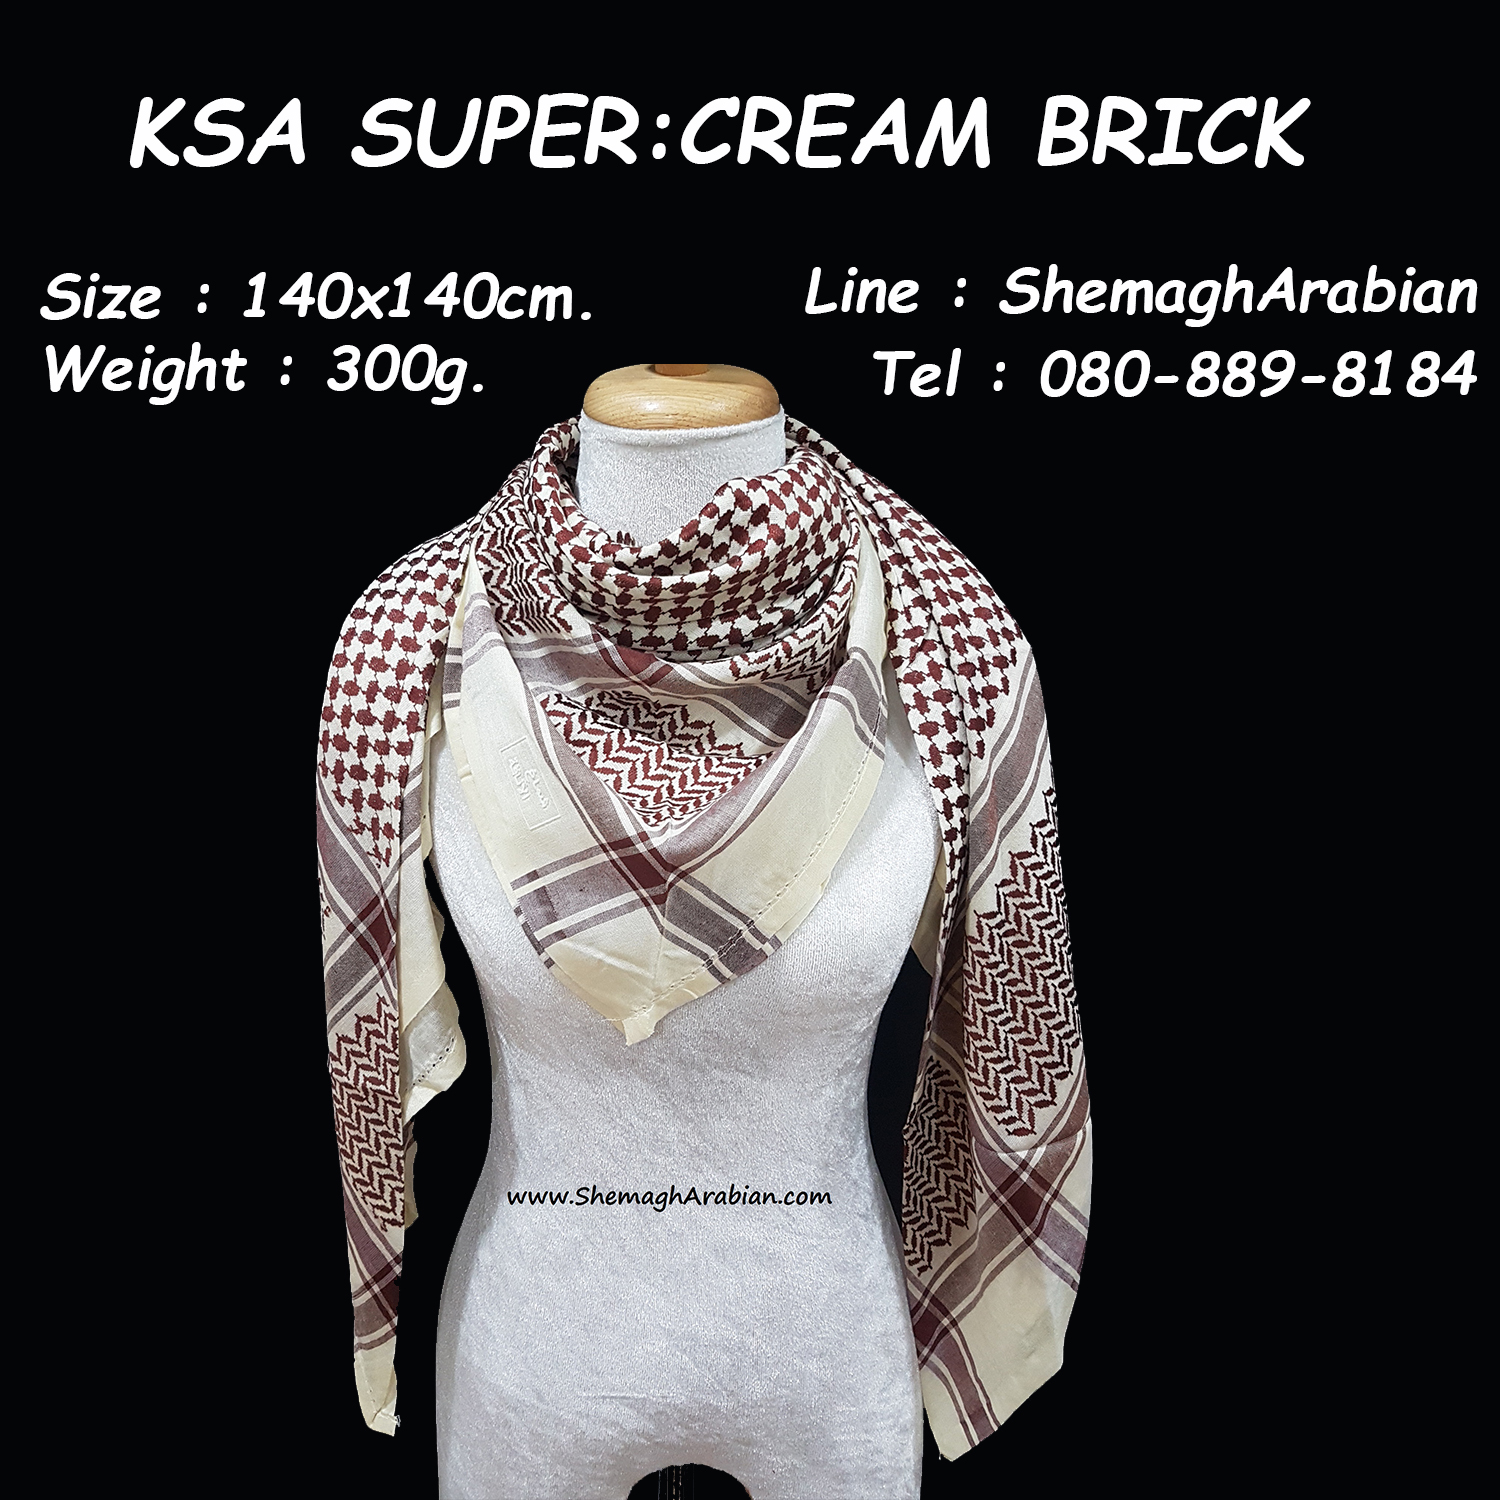 KSA SUPER : CREAM-BRICK